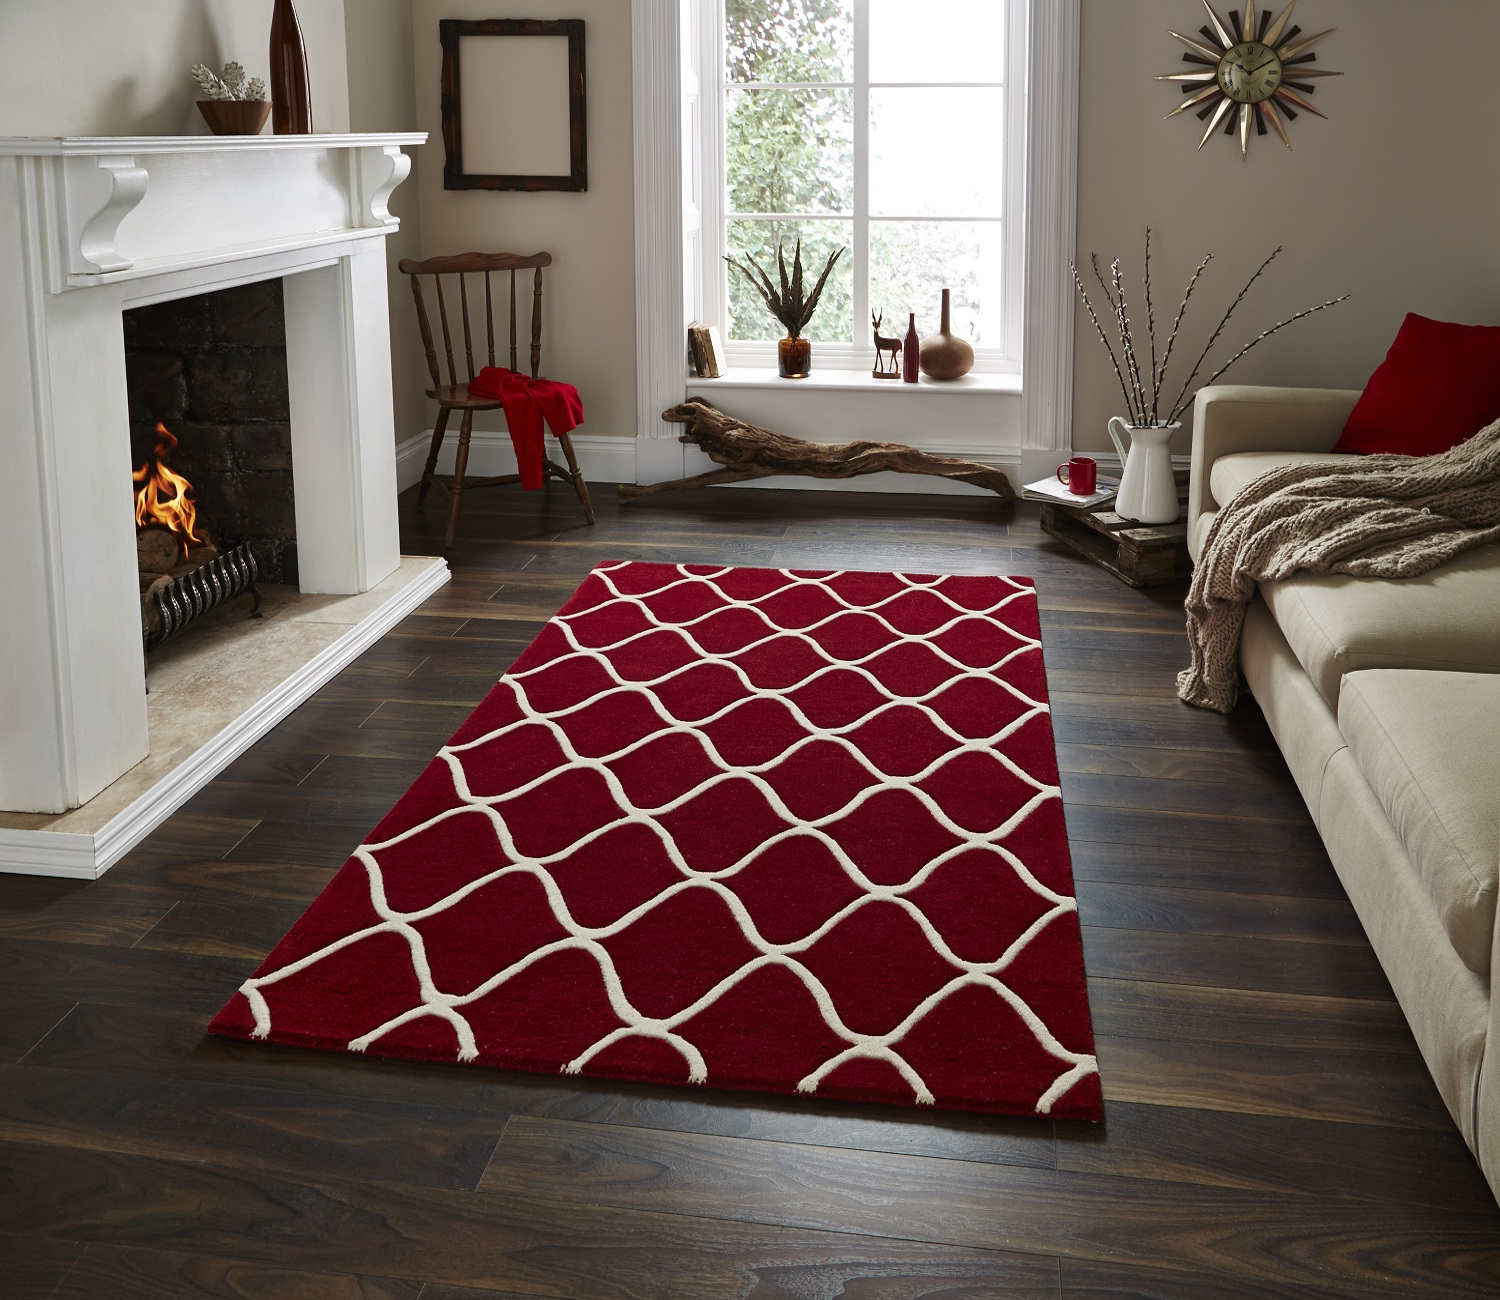 Wave Design Hand Tufted 100 Wool Rug Contemporary Home Decor With Regard To Large Red Rugs (View 14 of 15)